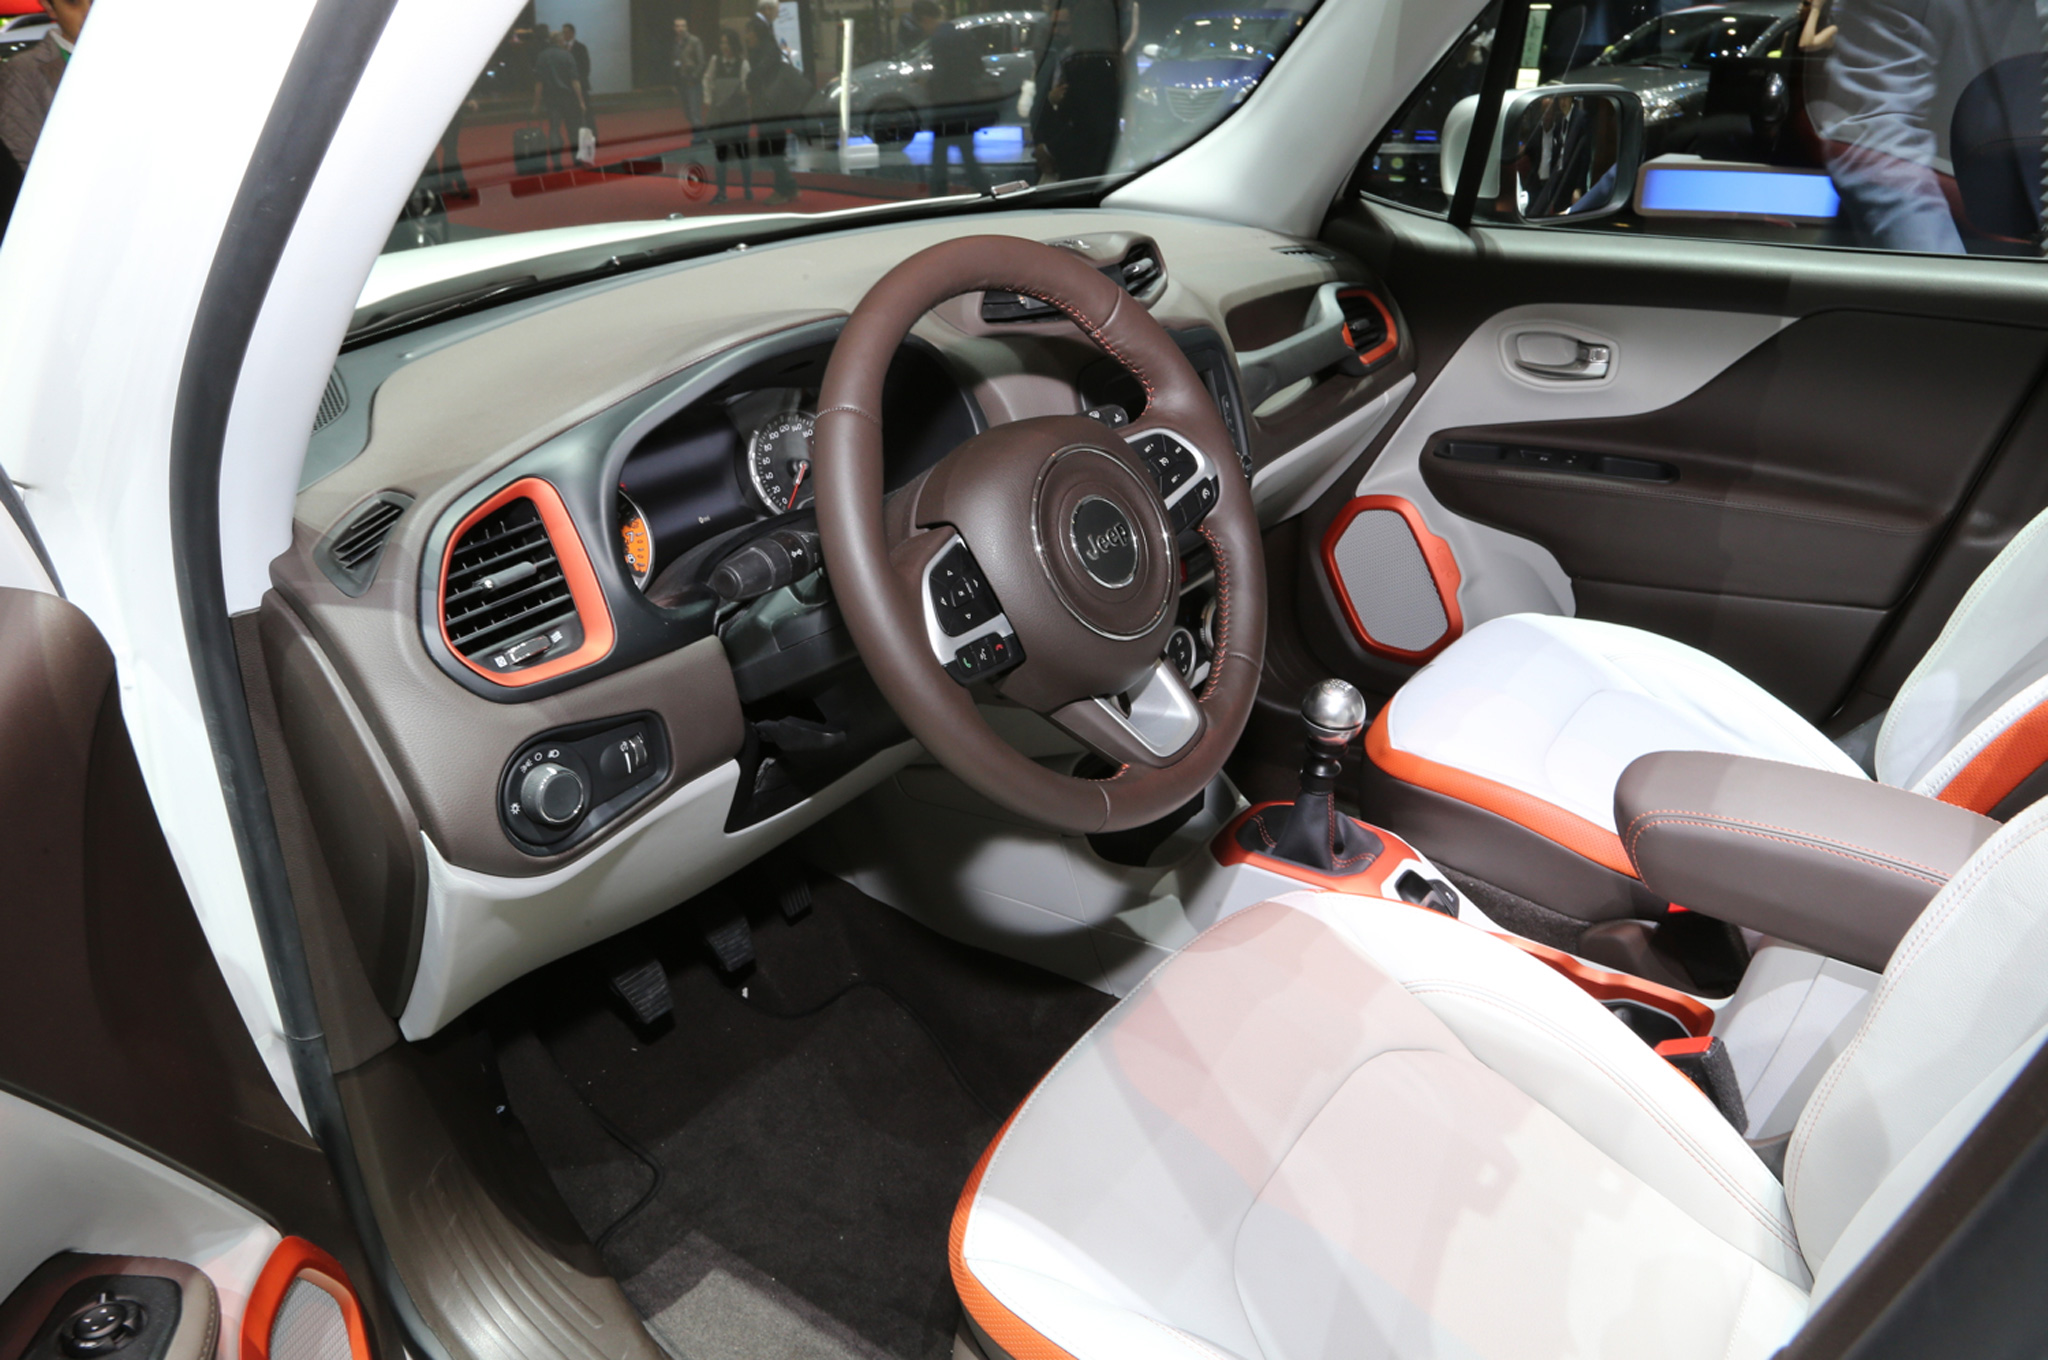 awesome-design-of-the-white-seats-ideas-with-orange-accents-as-the-jeep-renegade-2015-interior-ideas